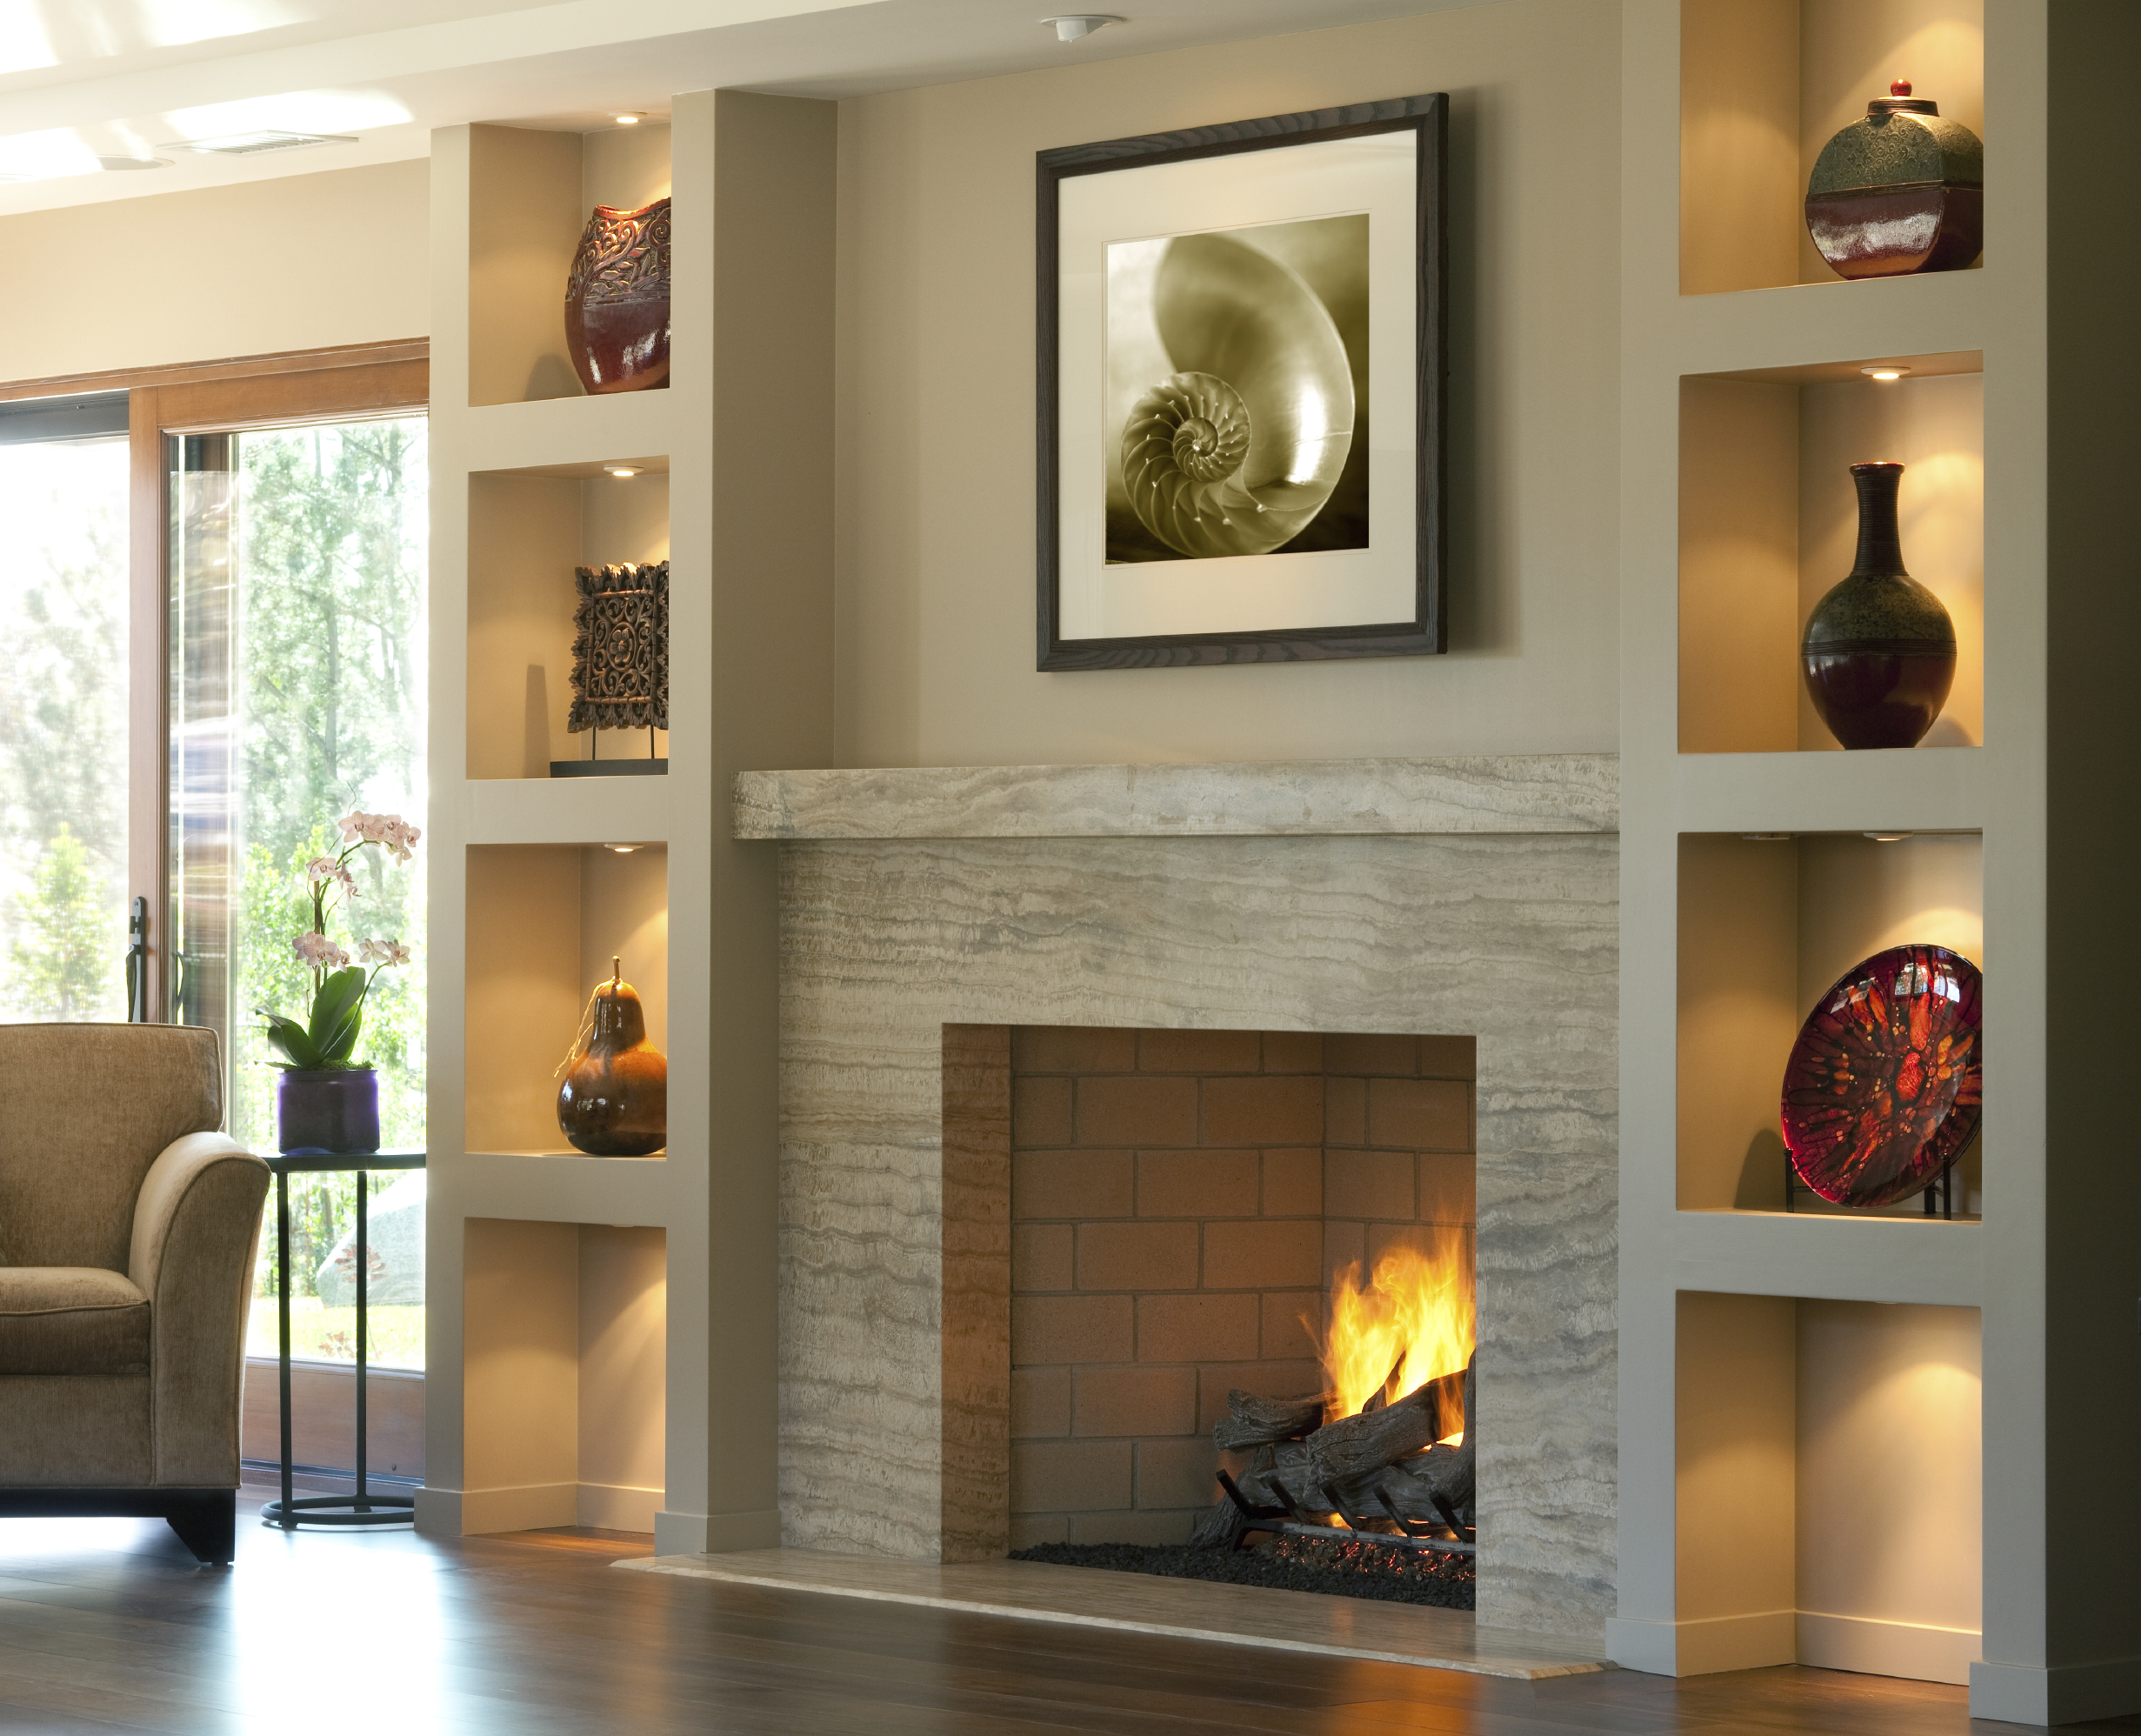 Fireplace with display shelves living loving fairfield.